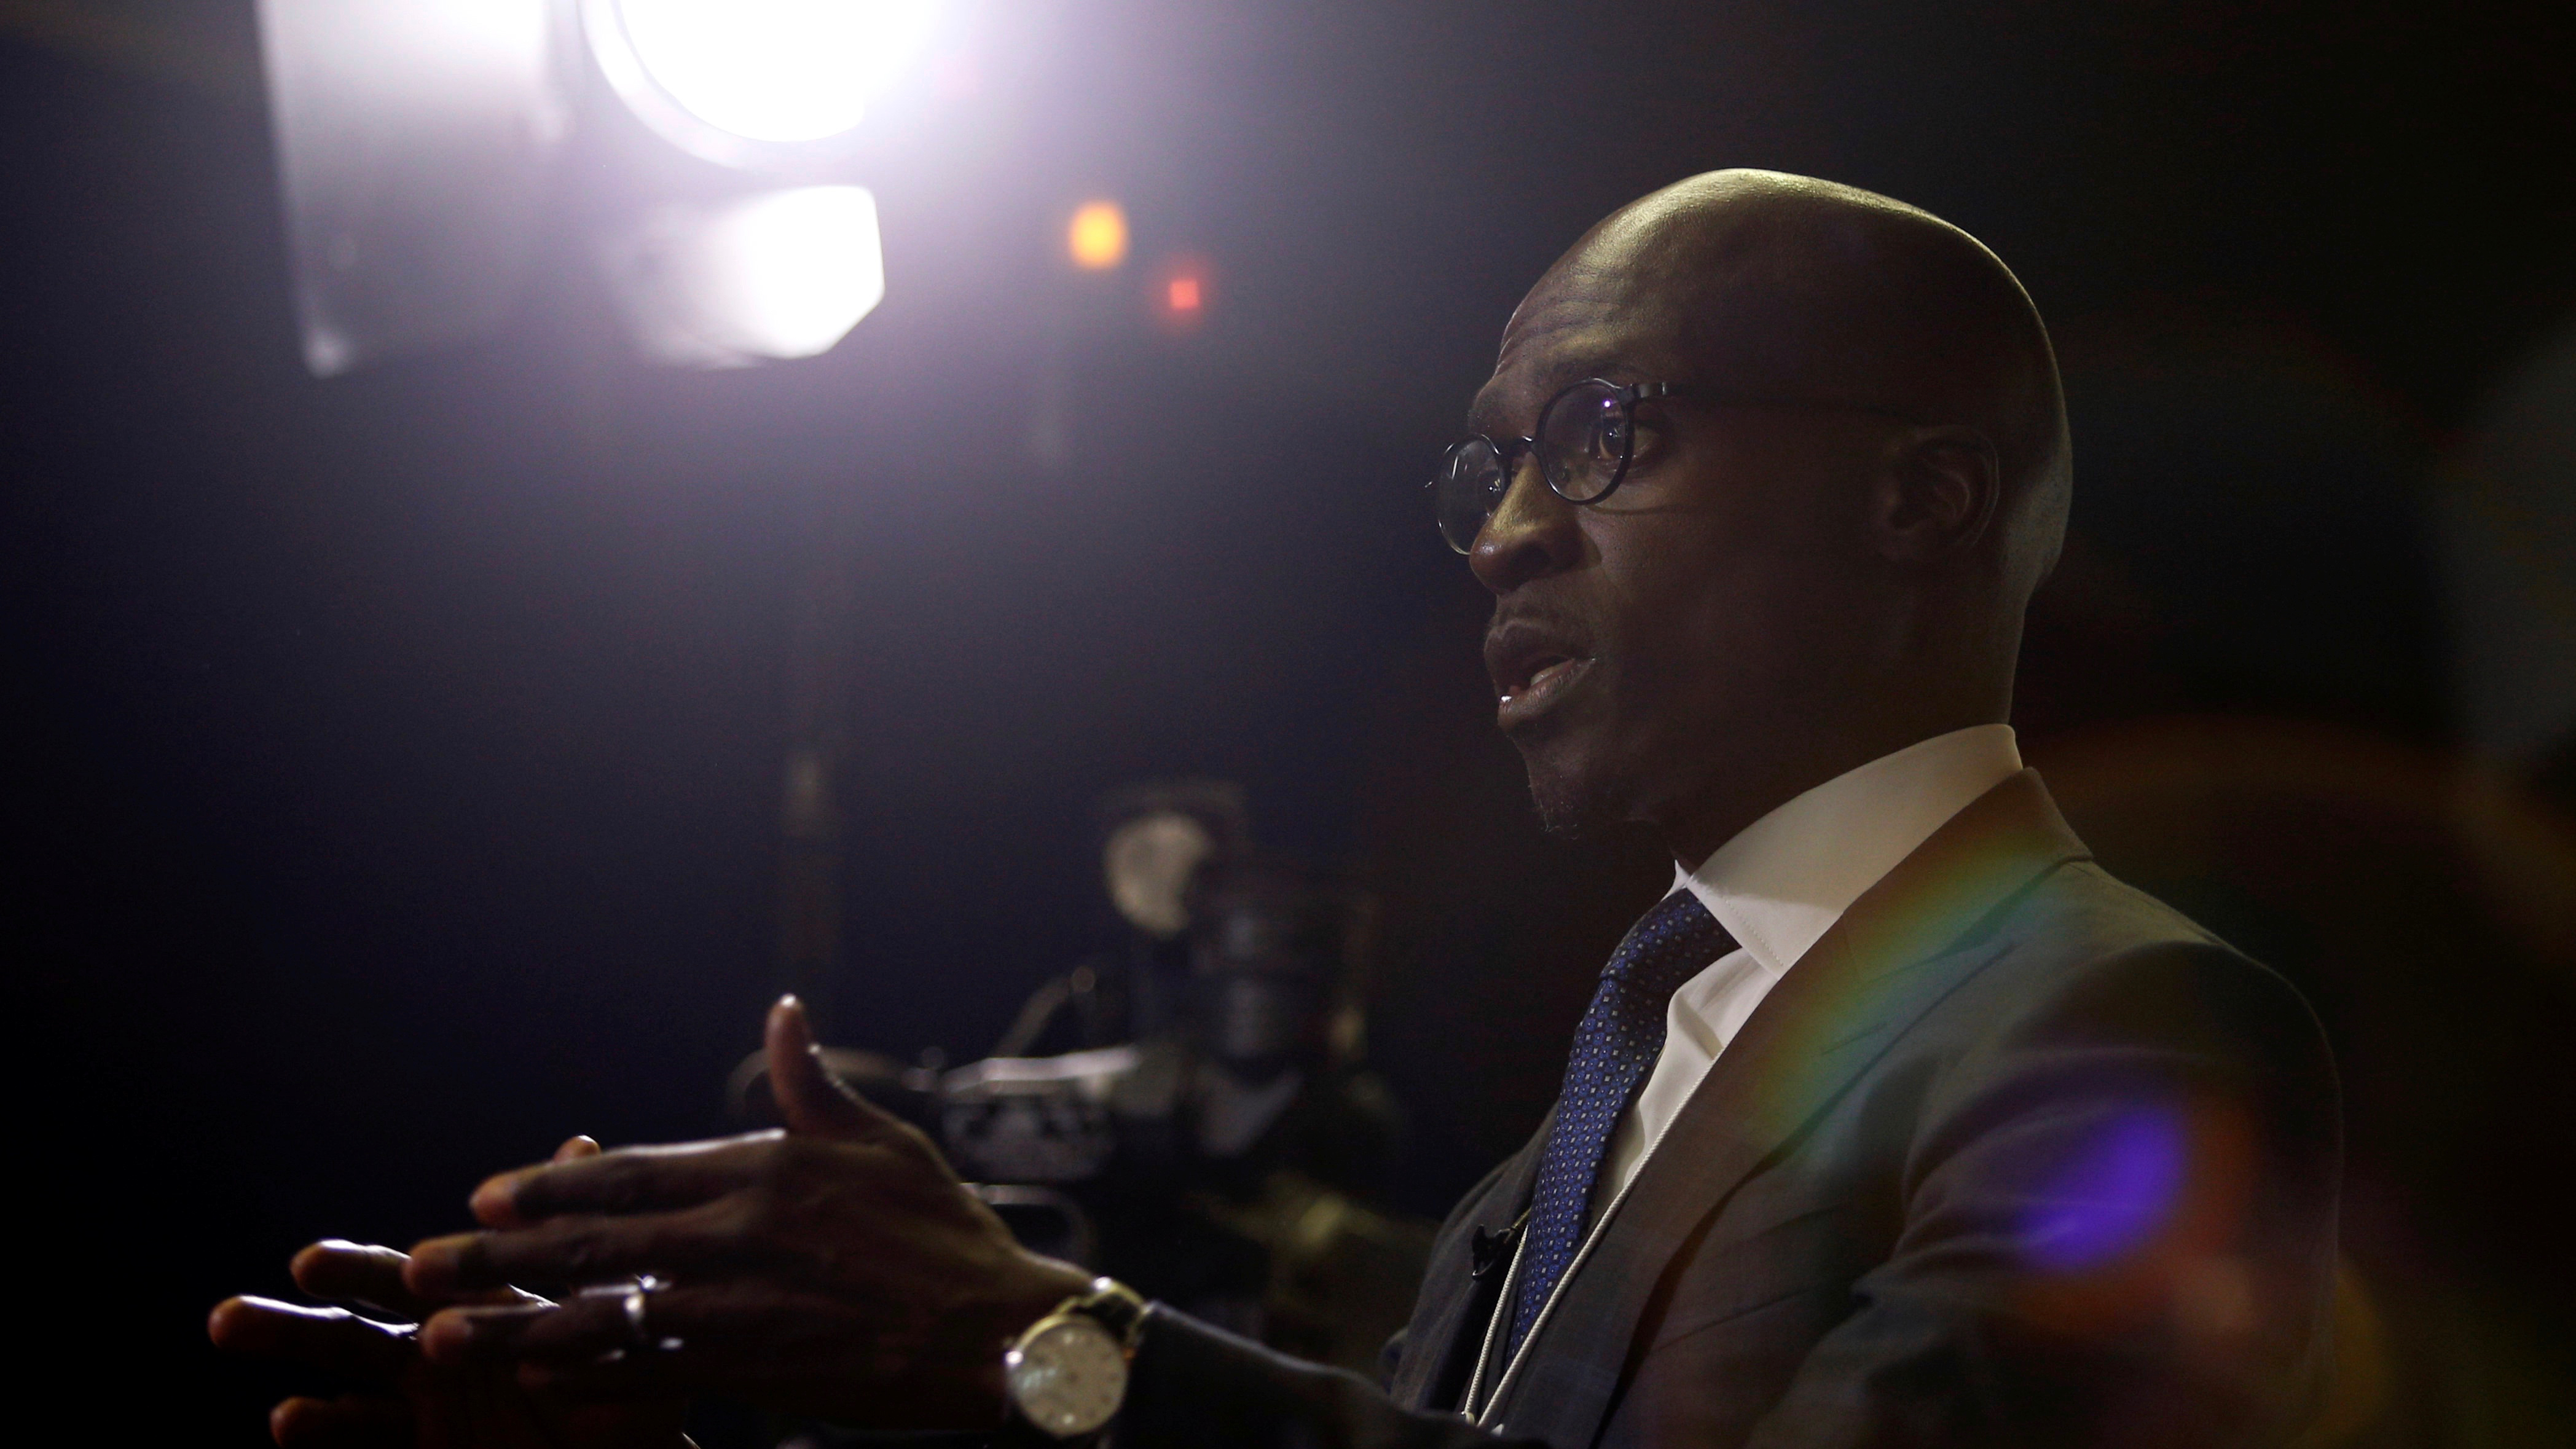 South African Finance Minister Malusi Gigaba speaks to journalists at the World Economic Forum on Africa 2017 meeting in Durban, South Africa, May 3, 2017. REUTERS/Rogan Ward     TPX IMAGES OF THE DAY - RTS14ZHW